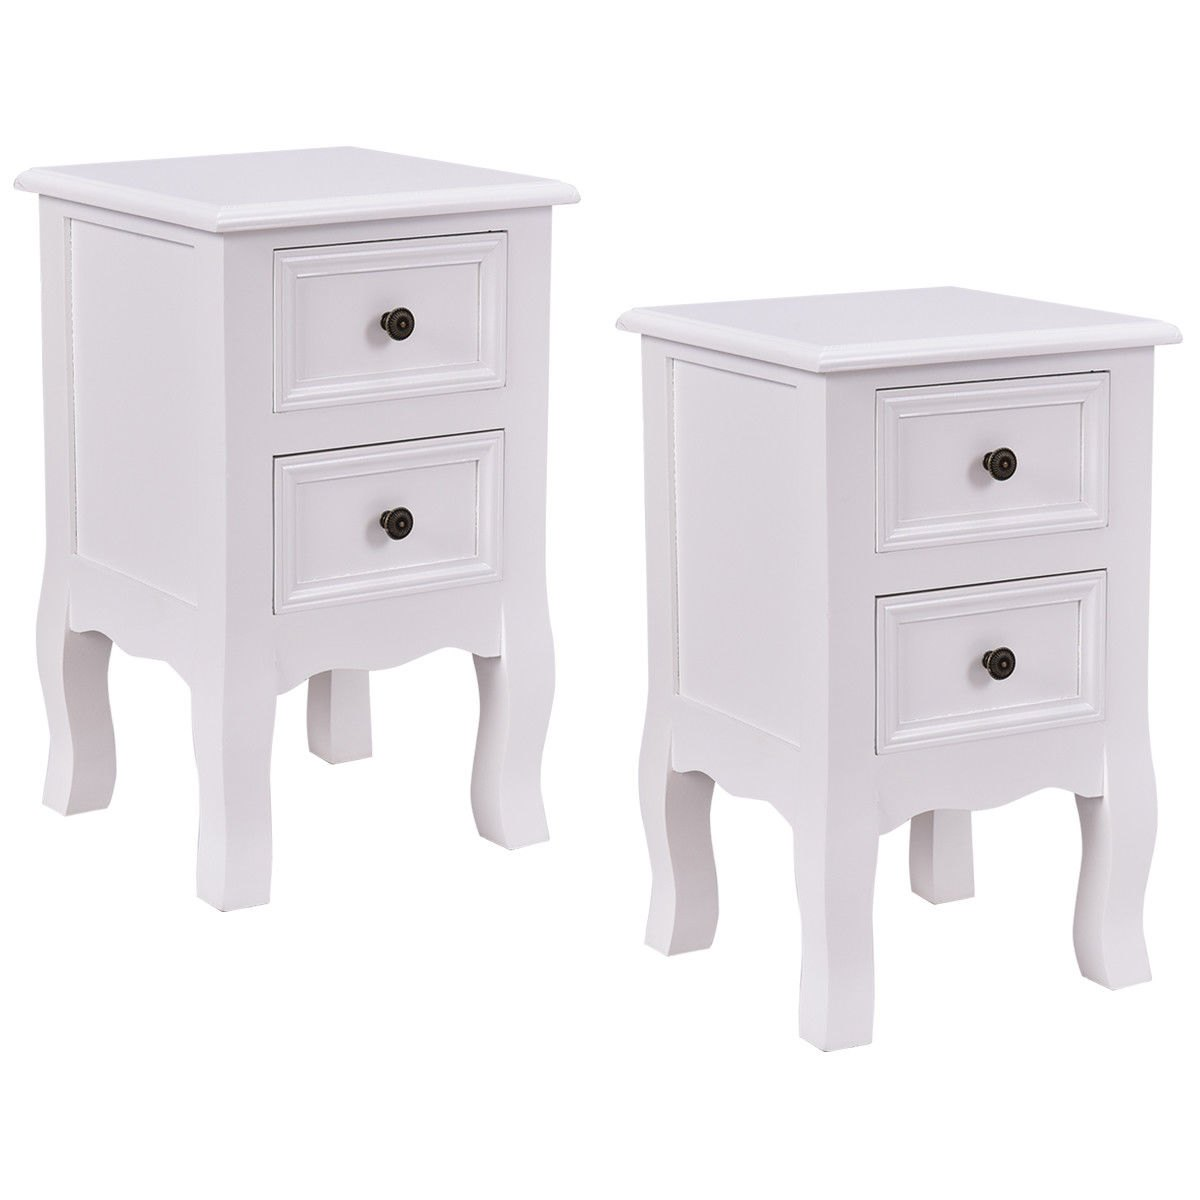 way white night stand storage drawers wood accent table with end west elm decor outdoor grill island barbie doll furniture round tables black bar patterned living room chairs